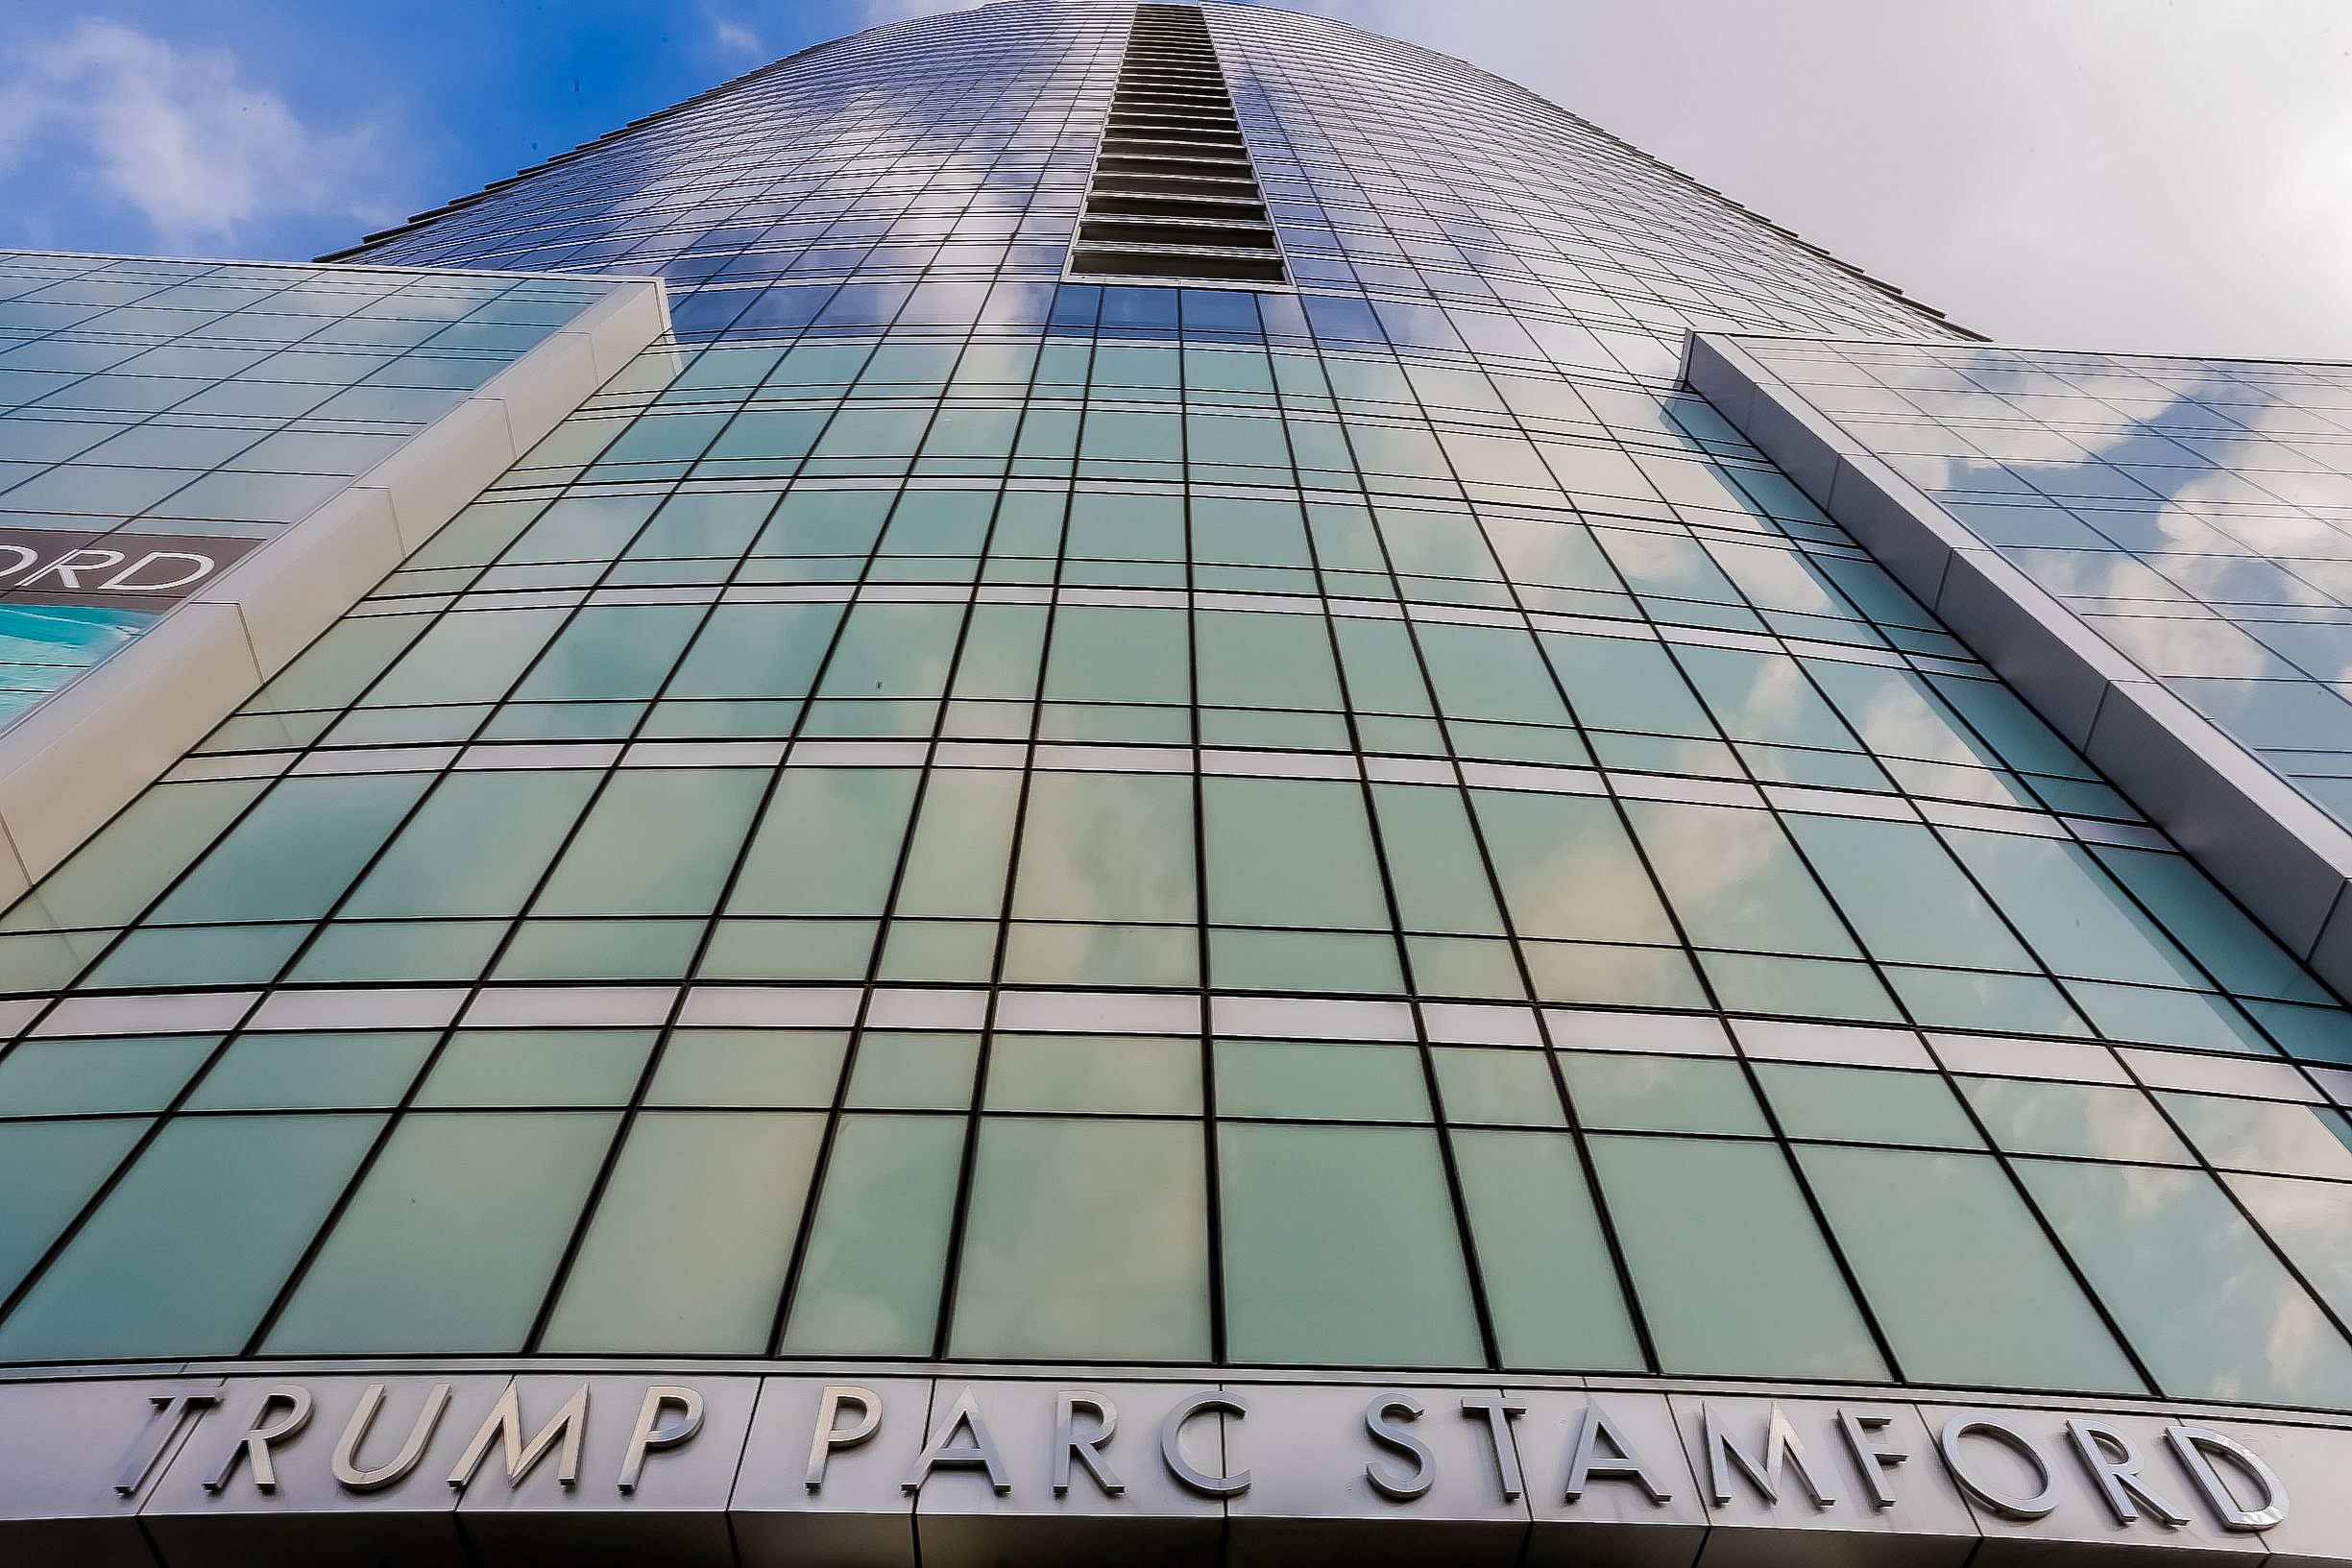 Property For Sale at Trump Parc